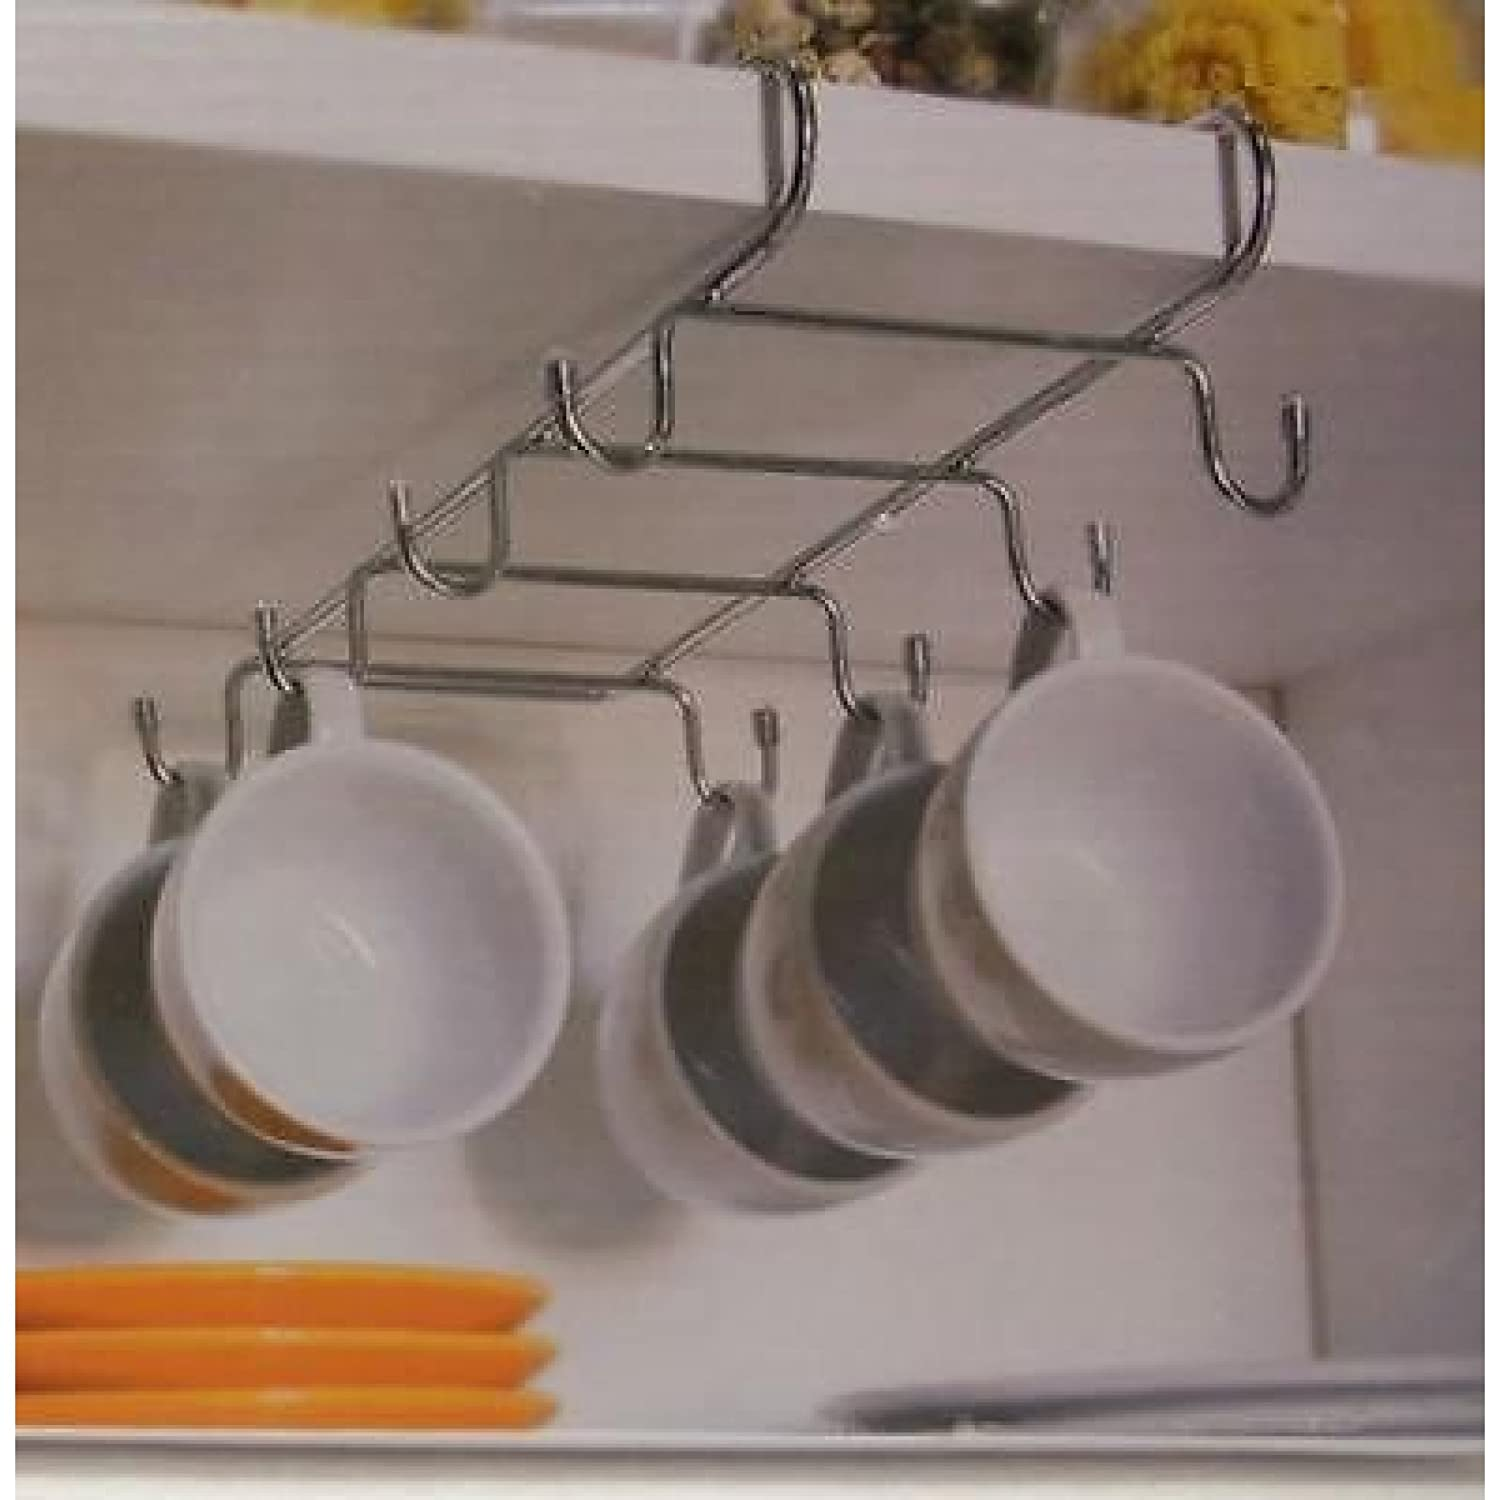 Chrome Plated Under Shelf 8 Hook Mug Cup Holder Tree Storage Accessories